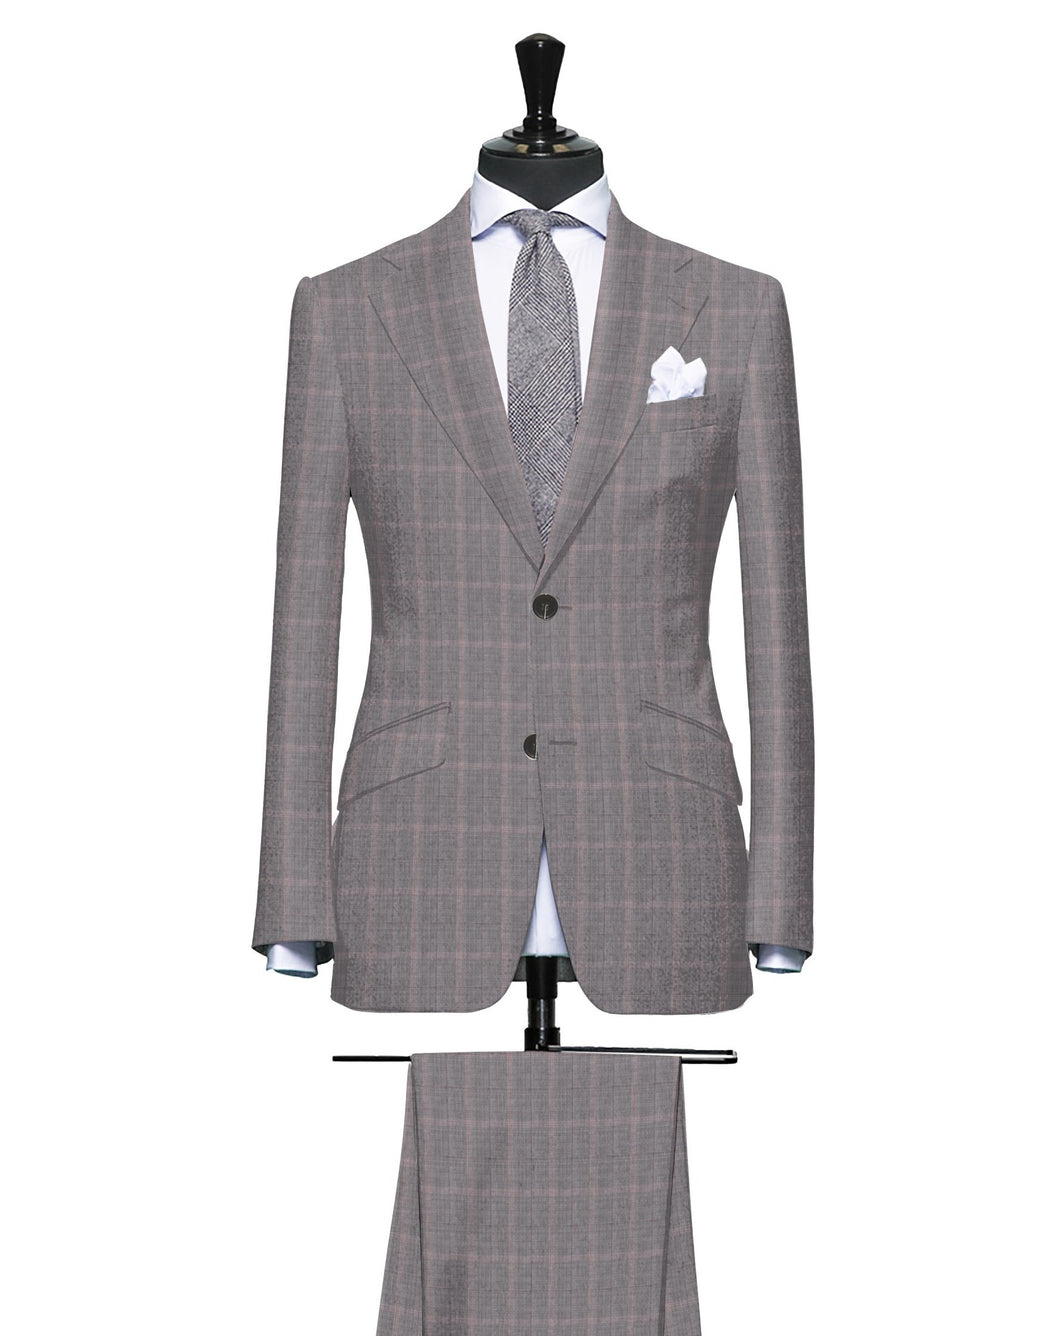 Sartorial Gray with Accents of Pink and Burgundy, Super 150, Wool